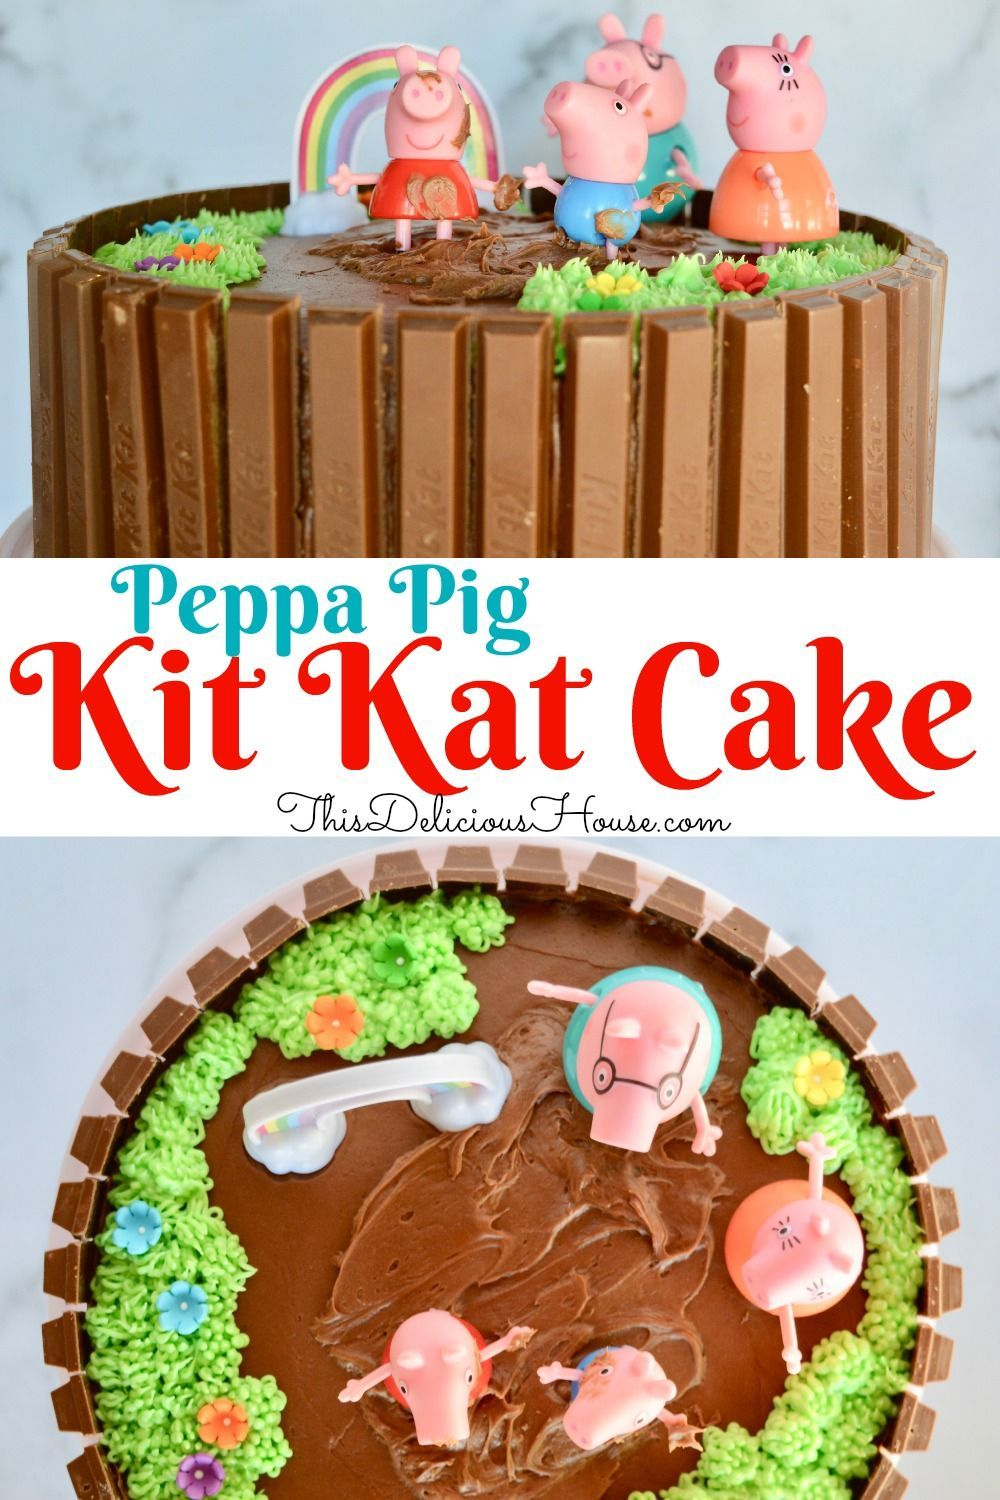 Marvelous Peppa Pig Birthday Cake Recipe Peppa Pig Birthday Cake Pig Funny Birthday Cards Online Inifodamsfinfo